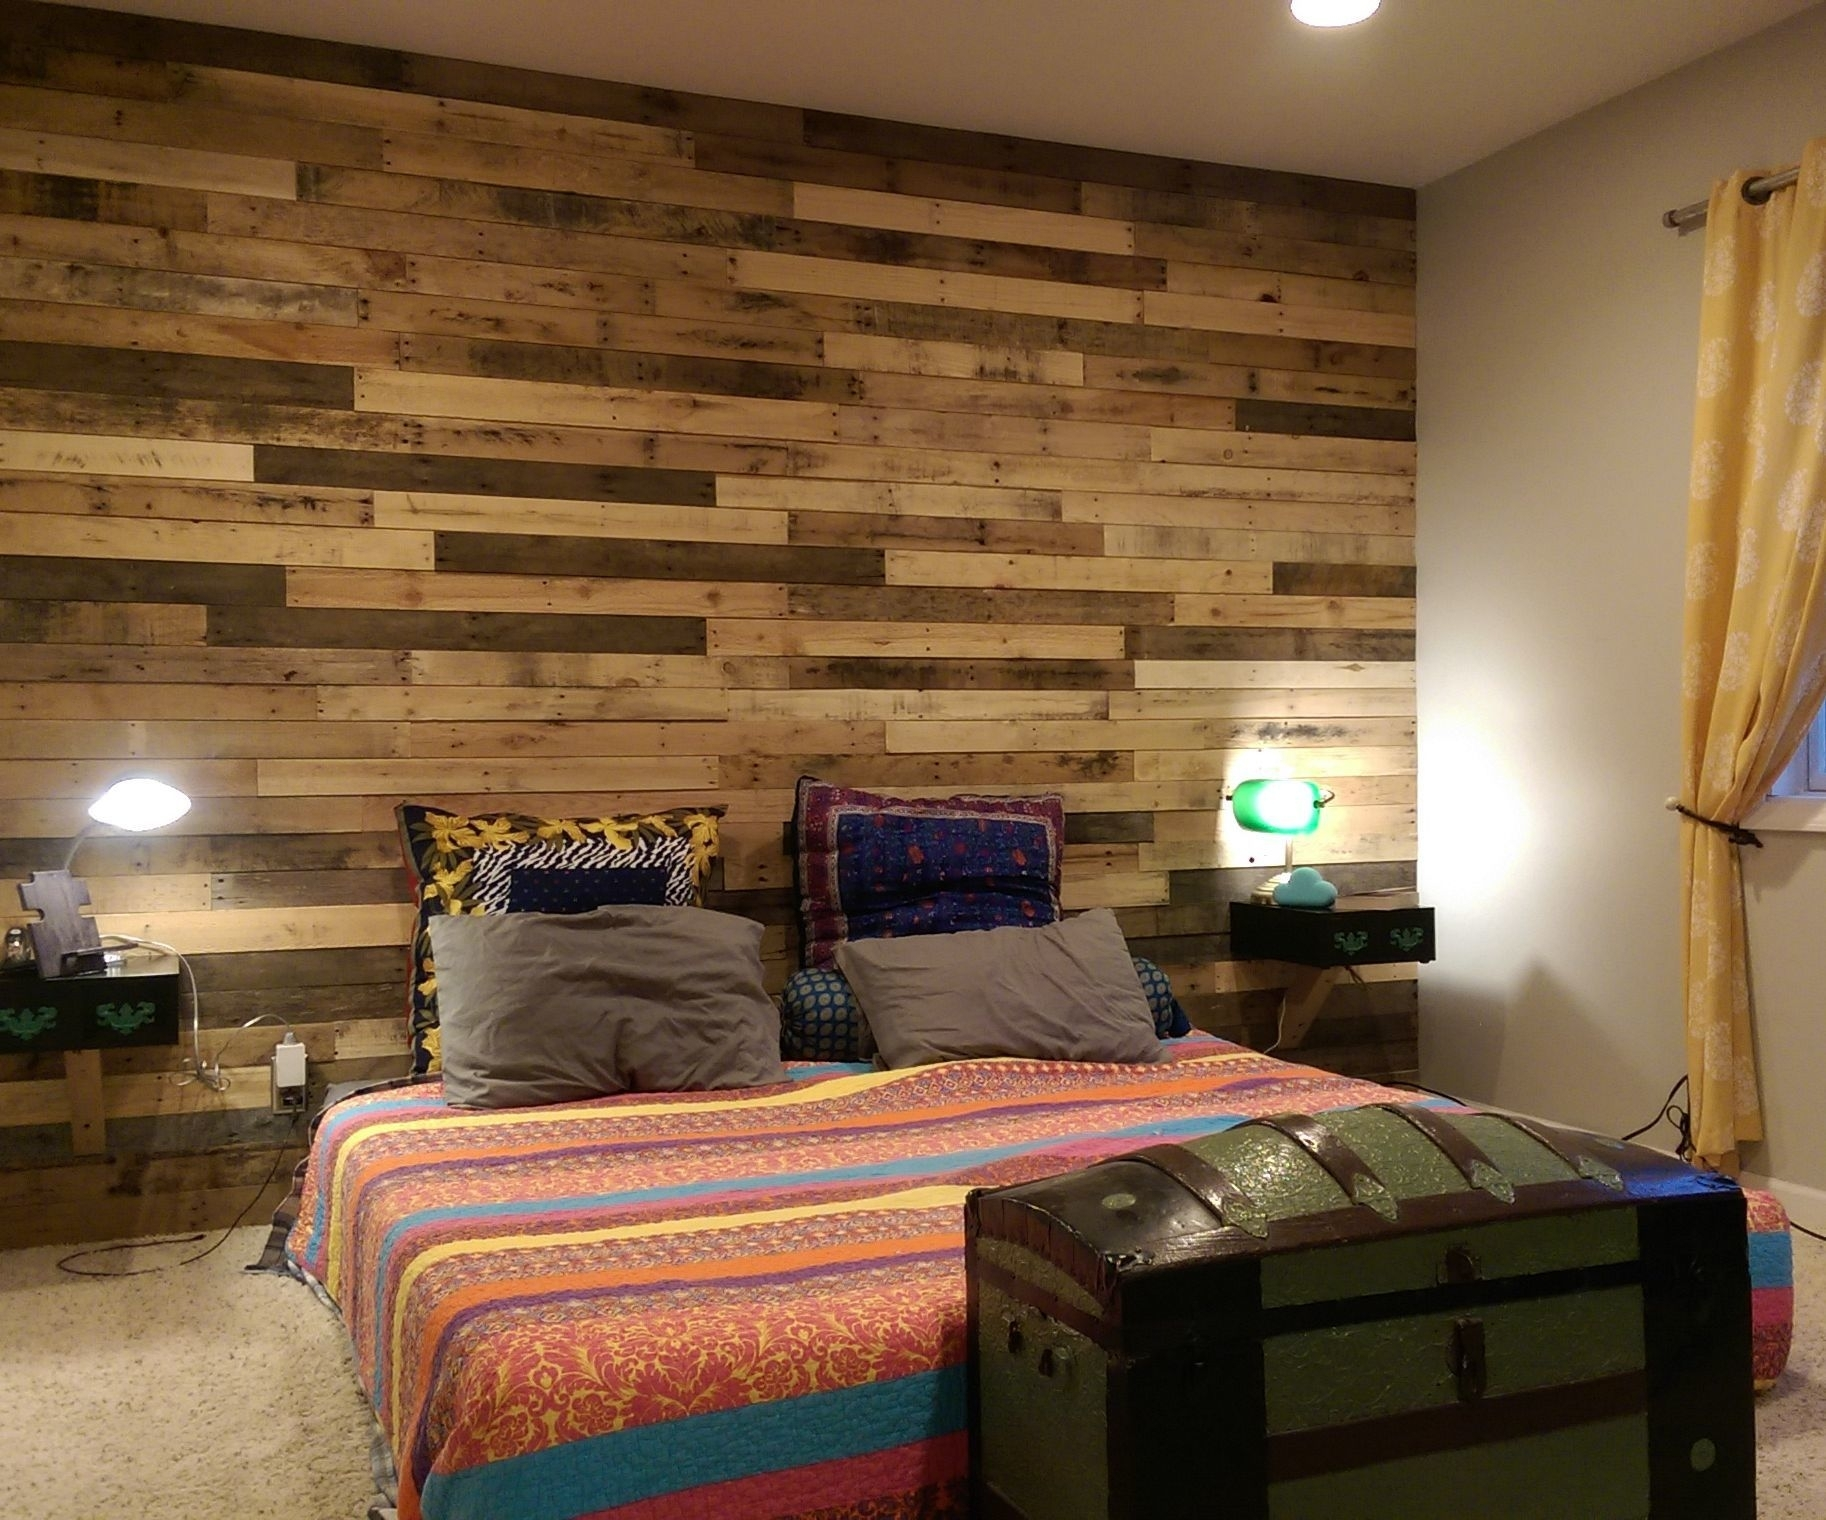 Pallet Accent Wall: 4 Steps (with Pictures) Throughout 2017 Wall Accents For Bedroom (View 10 of 15)